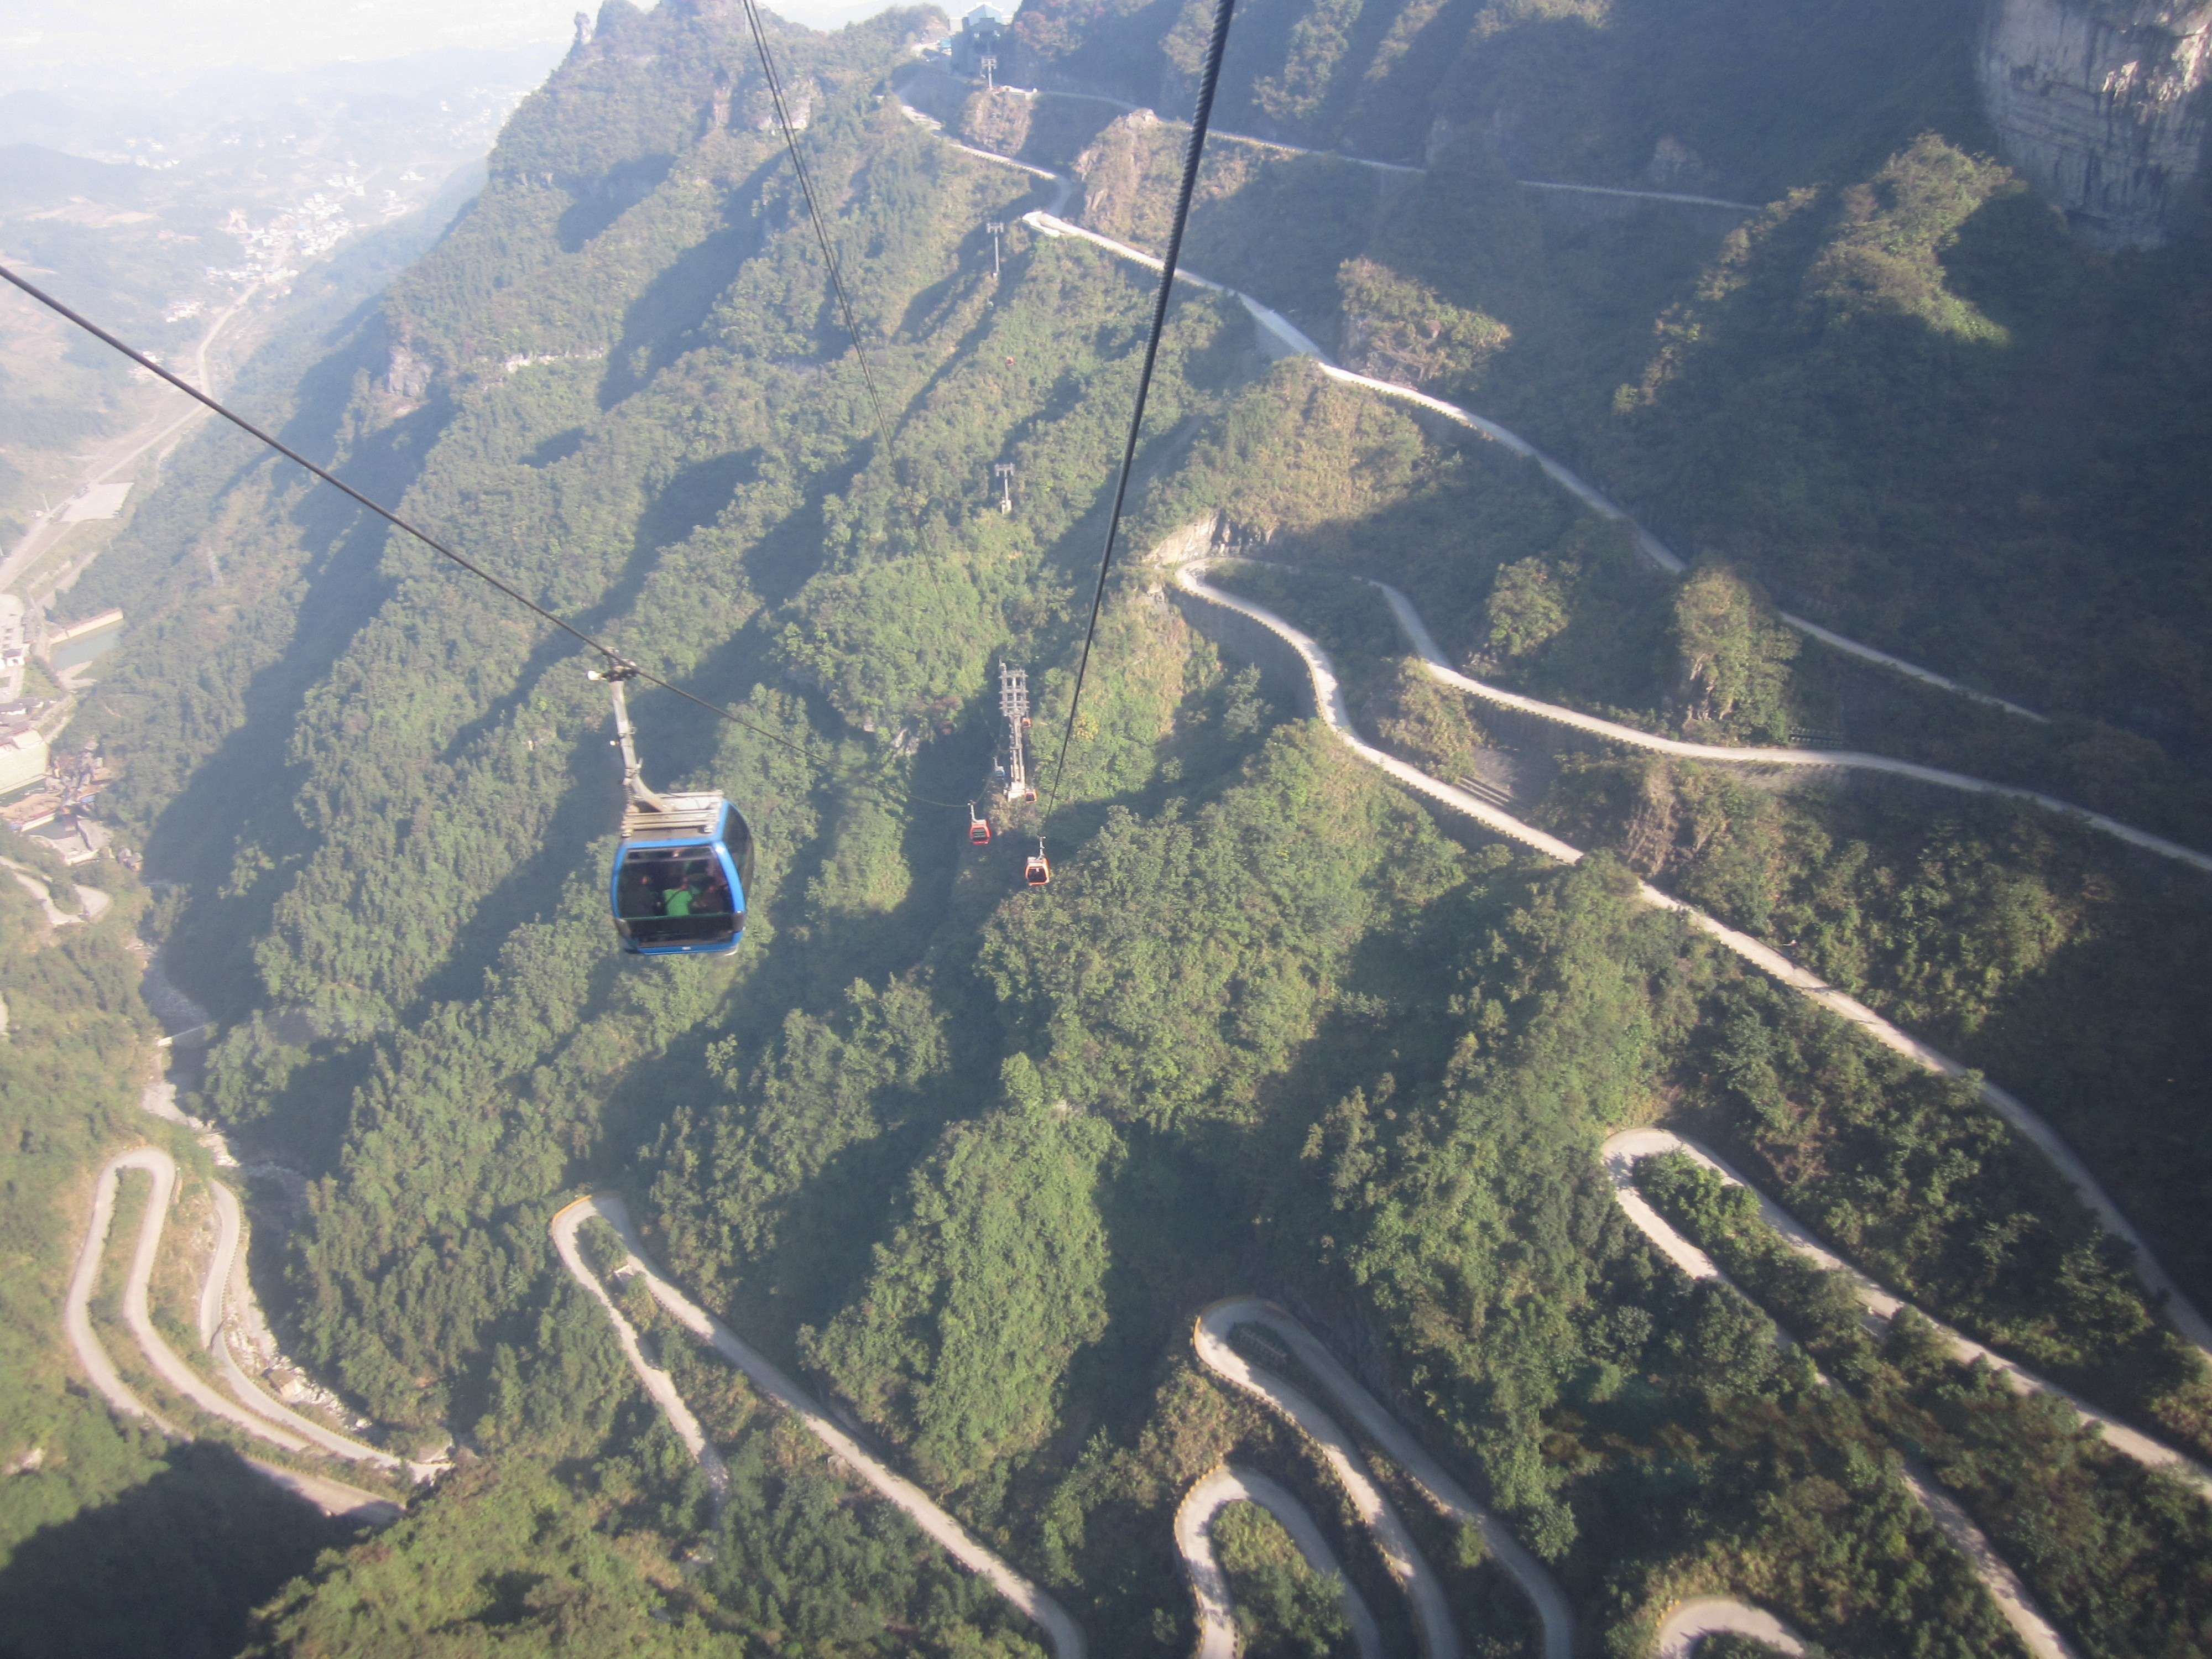 highest cable way in the world